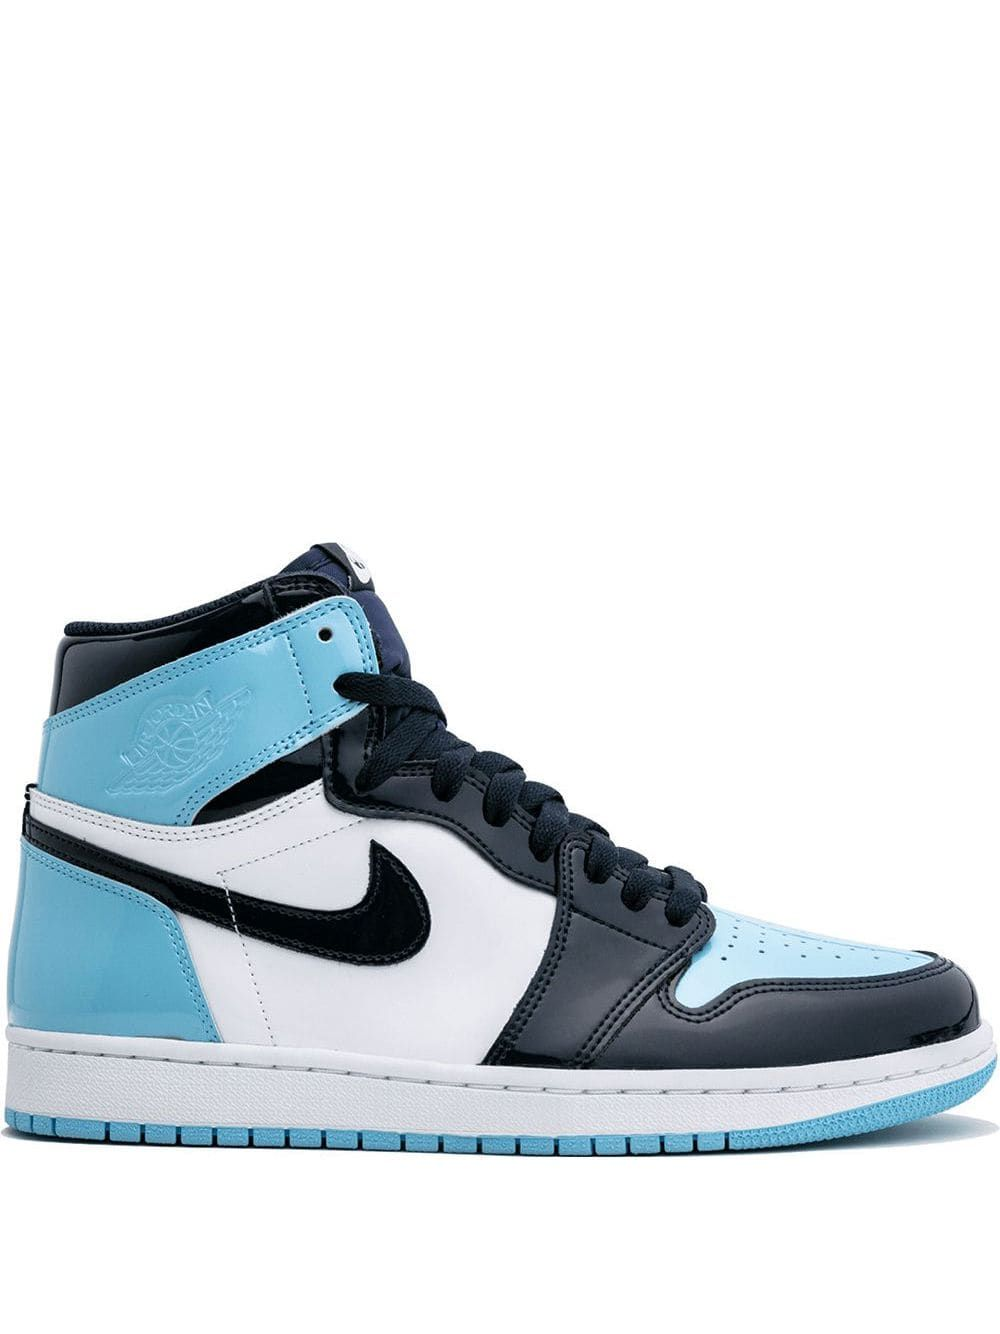 Jordan Air Jordan 1 High OG Sneakers - Farfetch